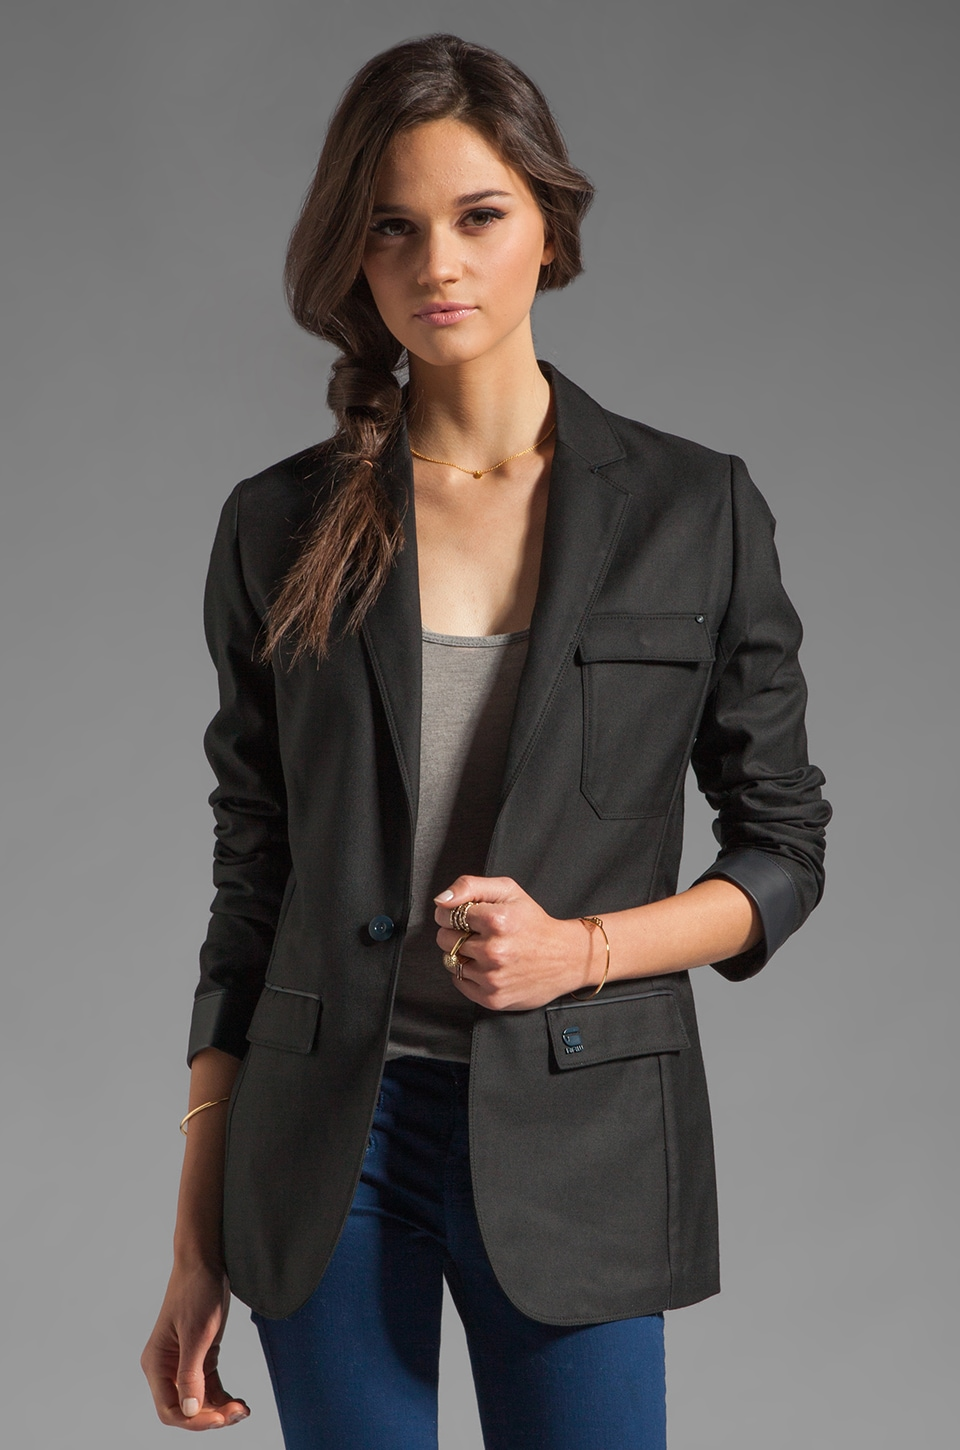 G-Star Alpine Boyfriend Blazer in Black